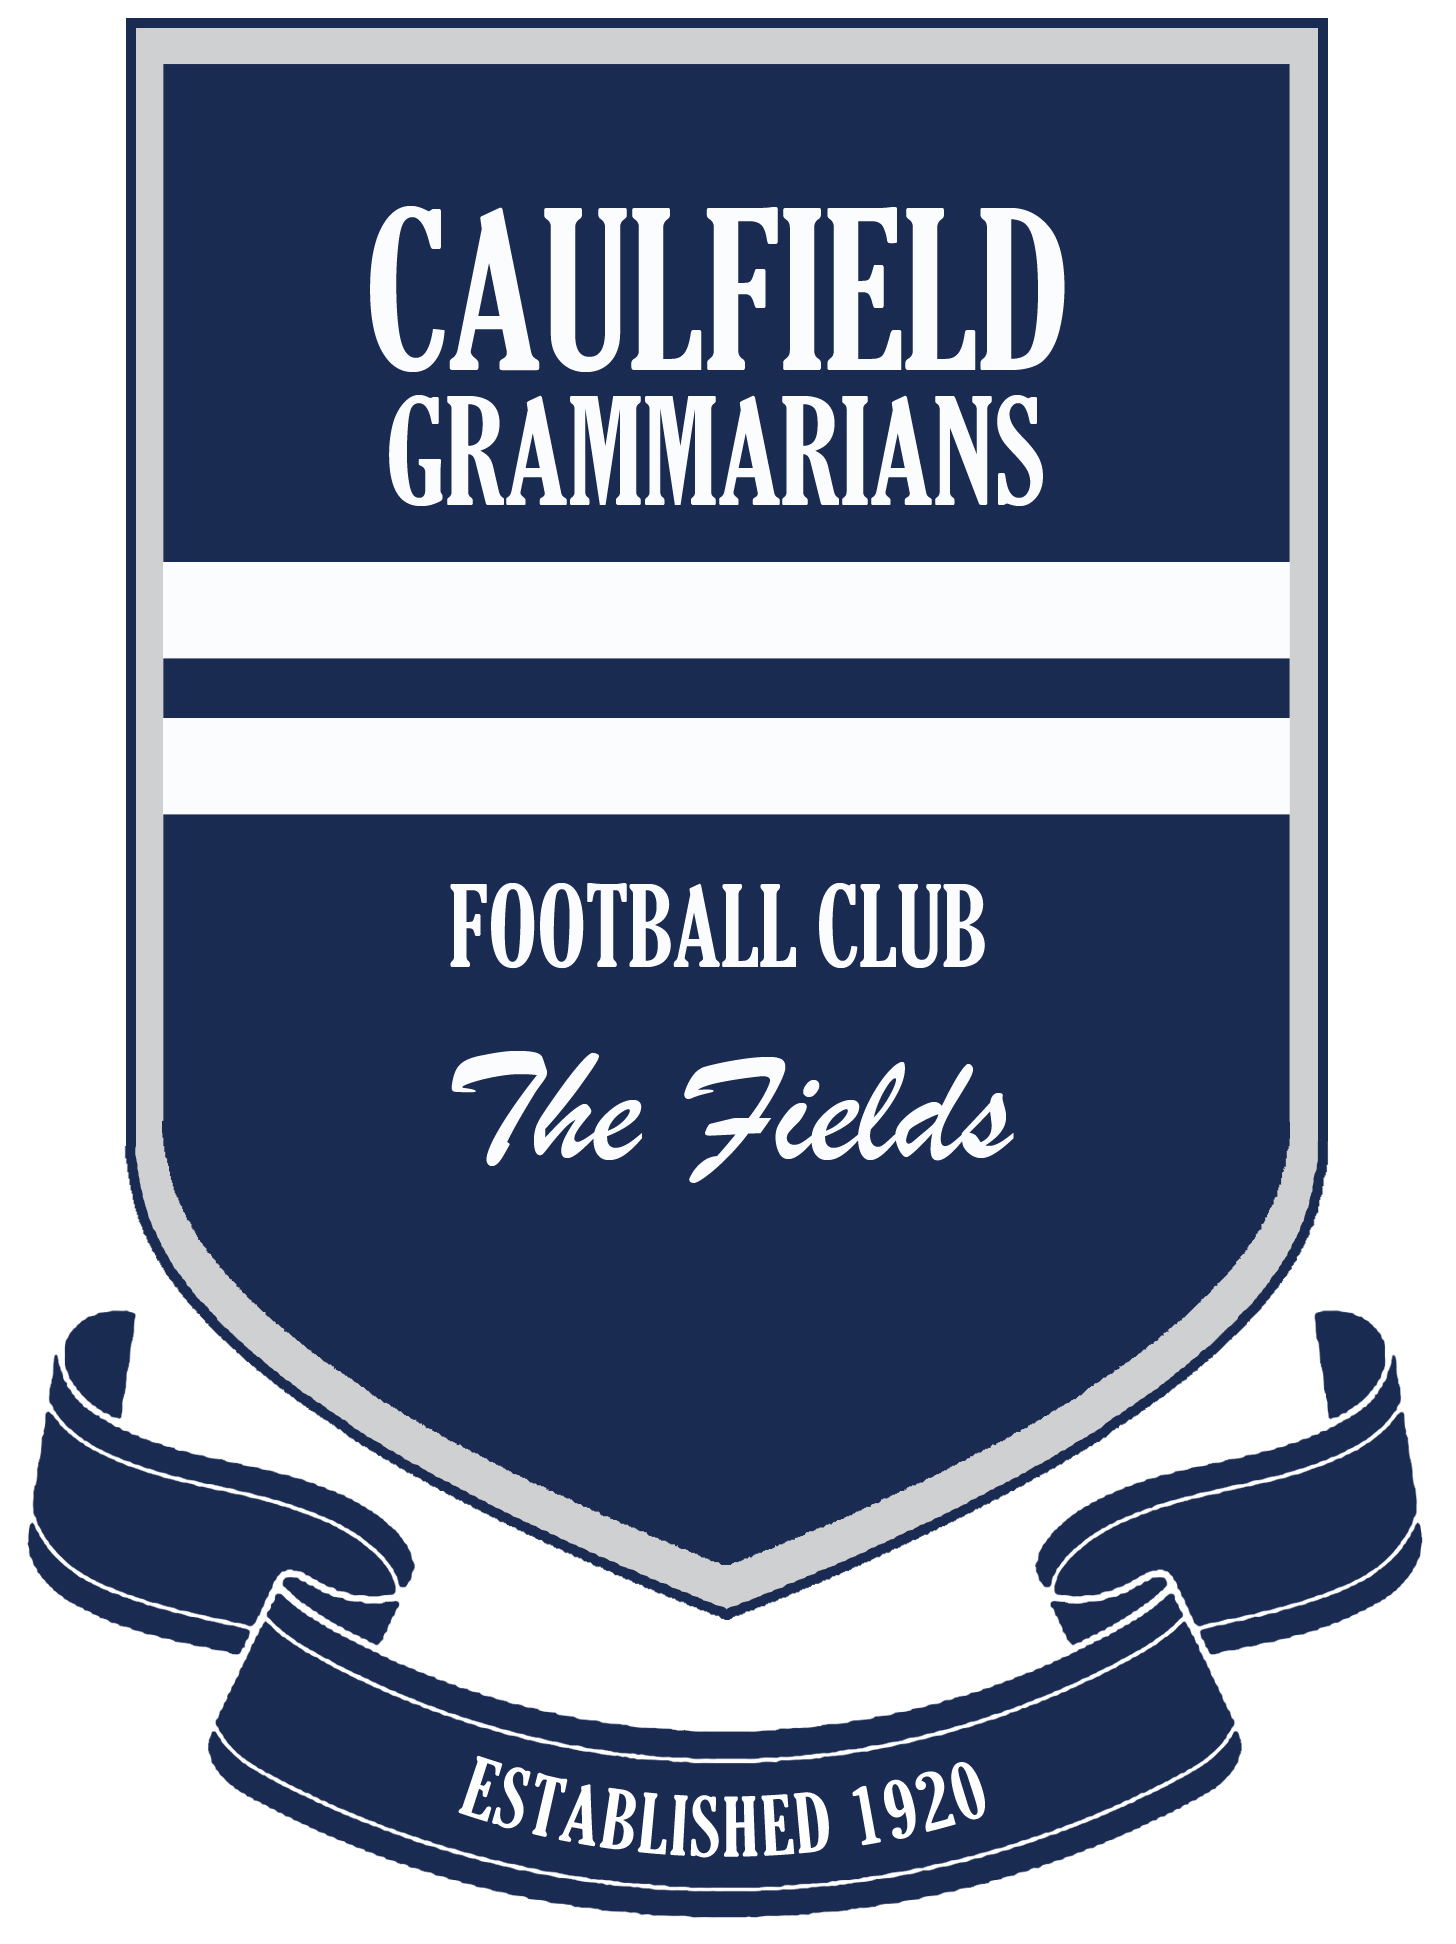 Caulfield Grammarians Football Club